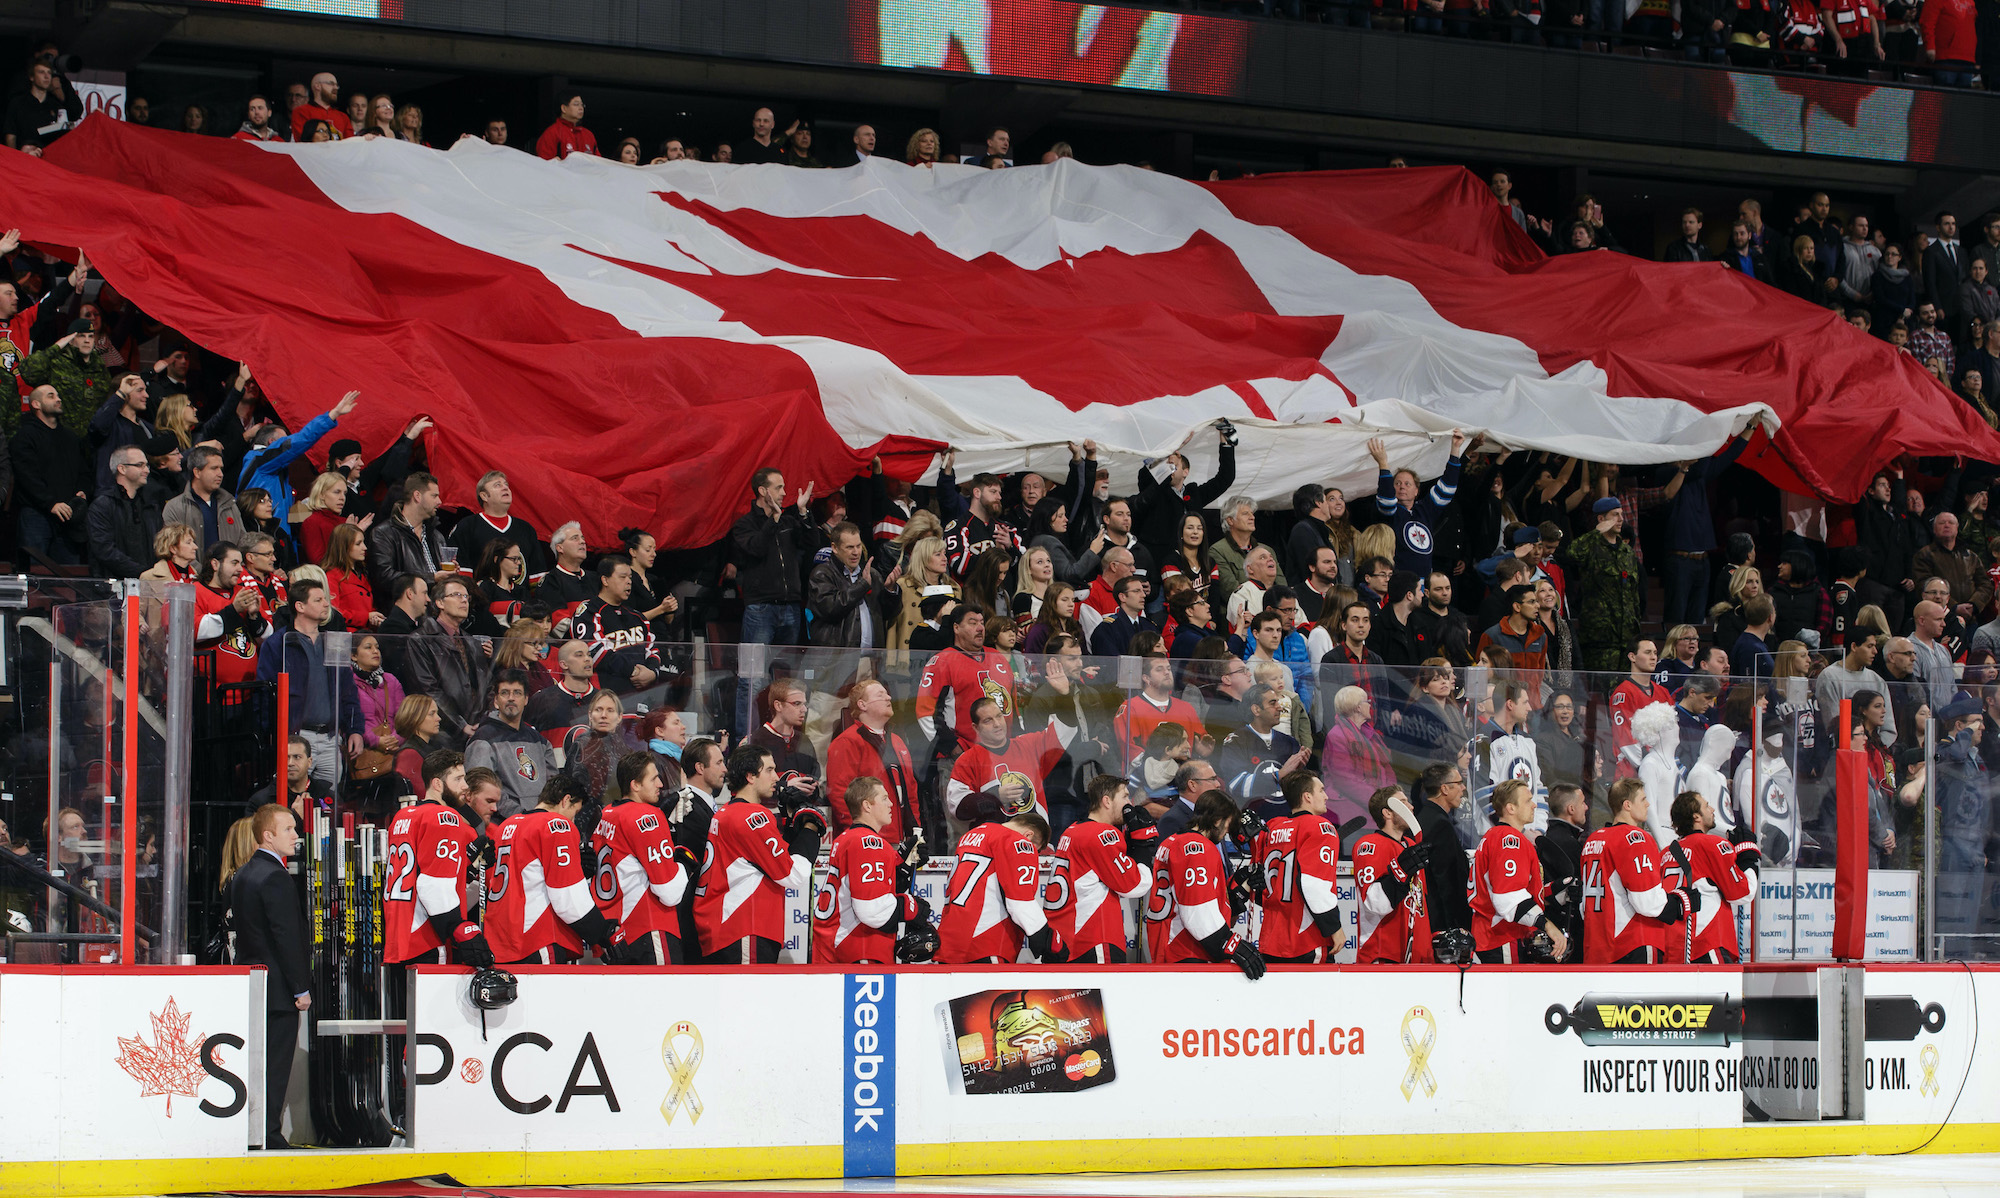 OTTAWA, ON - NOVEMBER 8: Members of the Ottawa Senators stand as a large Canadian flag is passed along in the stands during the singing of the national anthem prior to an NHL game against the Winnipeg Jets at Canadian Tire Centre on November 8, 2014 in Ottawa, Ontario, Canada. (Photo by Jana Chytilova/Freestyle Photography/Getty Images) *** Local Caption ***